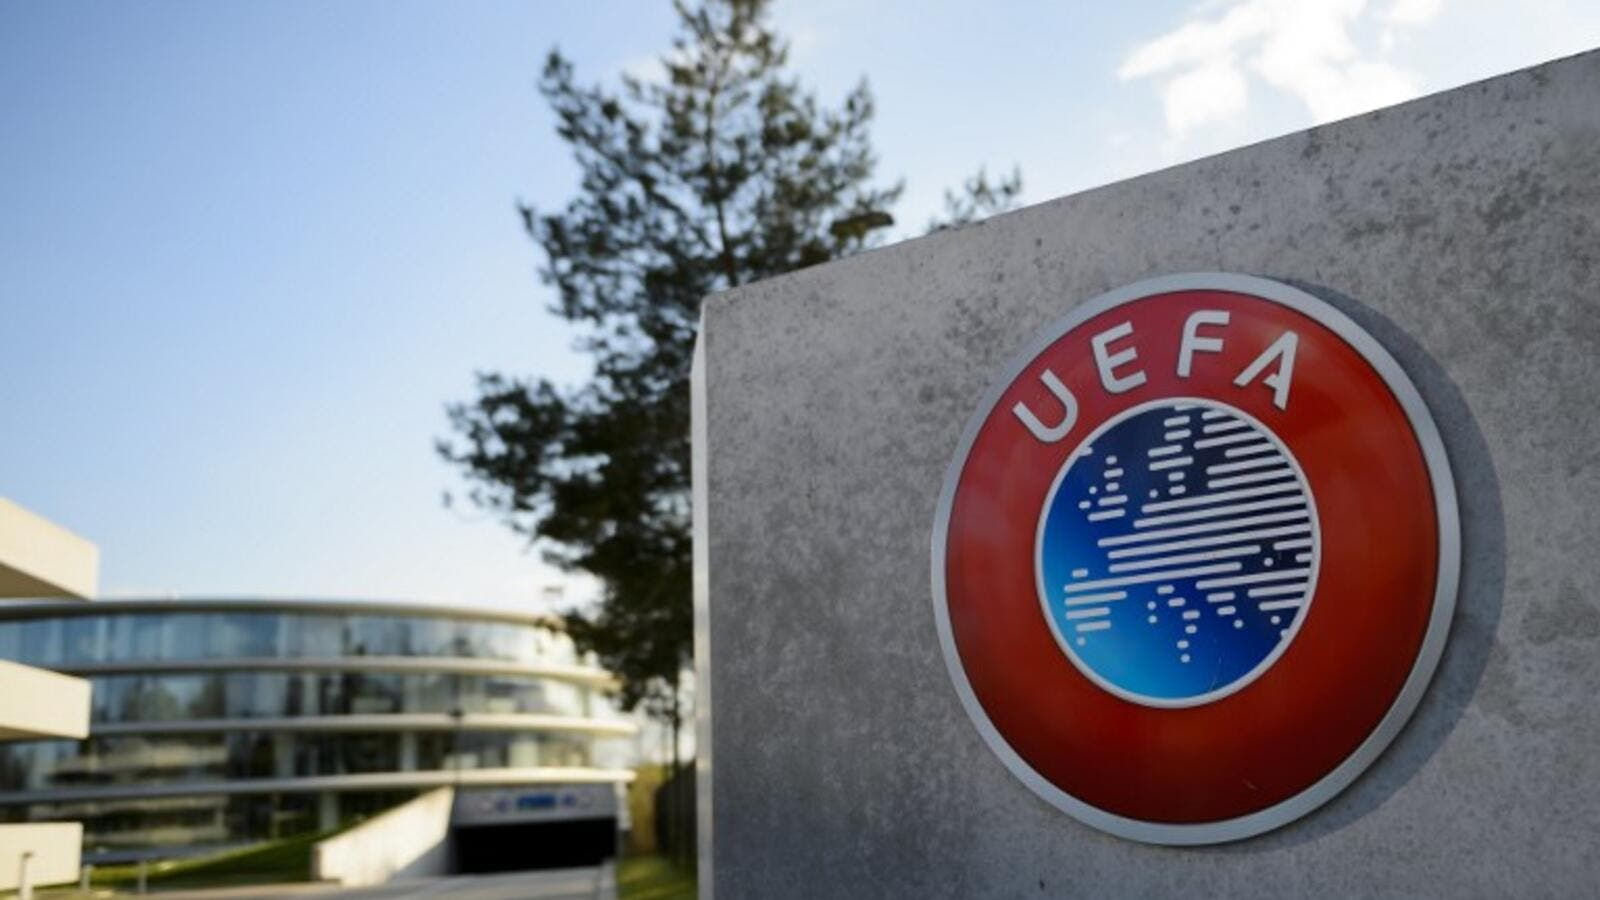 UEFA has given an update on security measures for Wednesday's European final in the wake of the explosion that killed at least 22 people on Monday